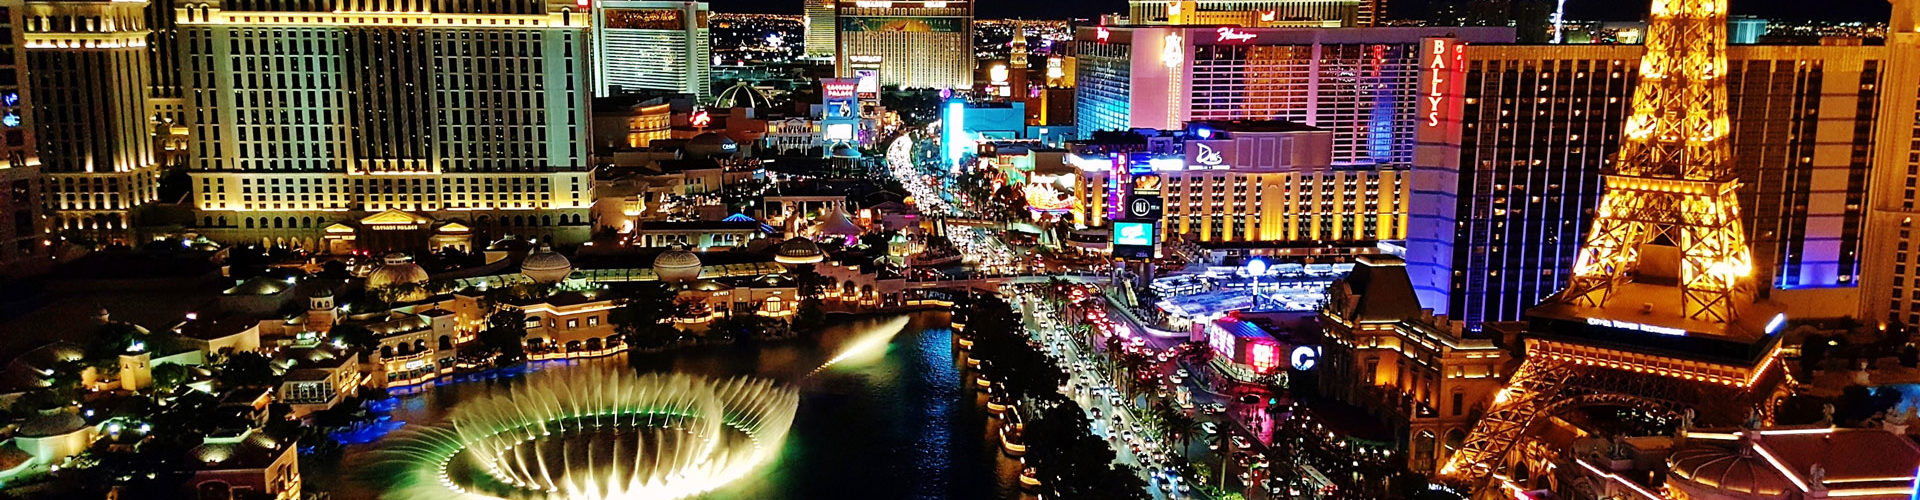 Things to Know Before Moving to Las Vegas - Your Vices May Be Exploited